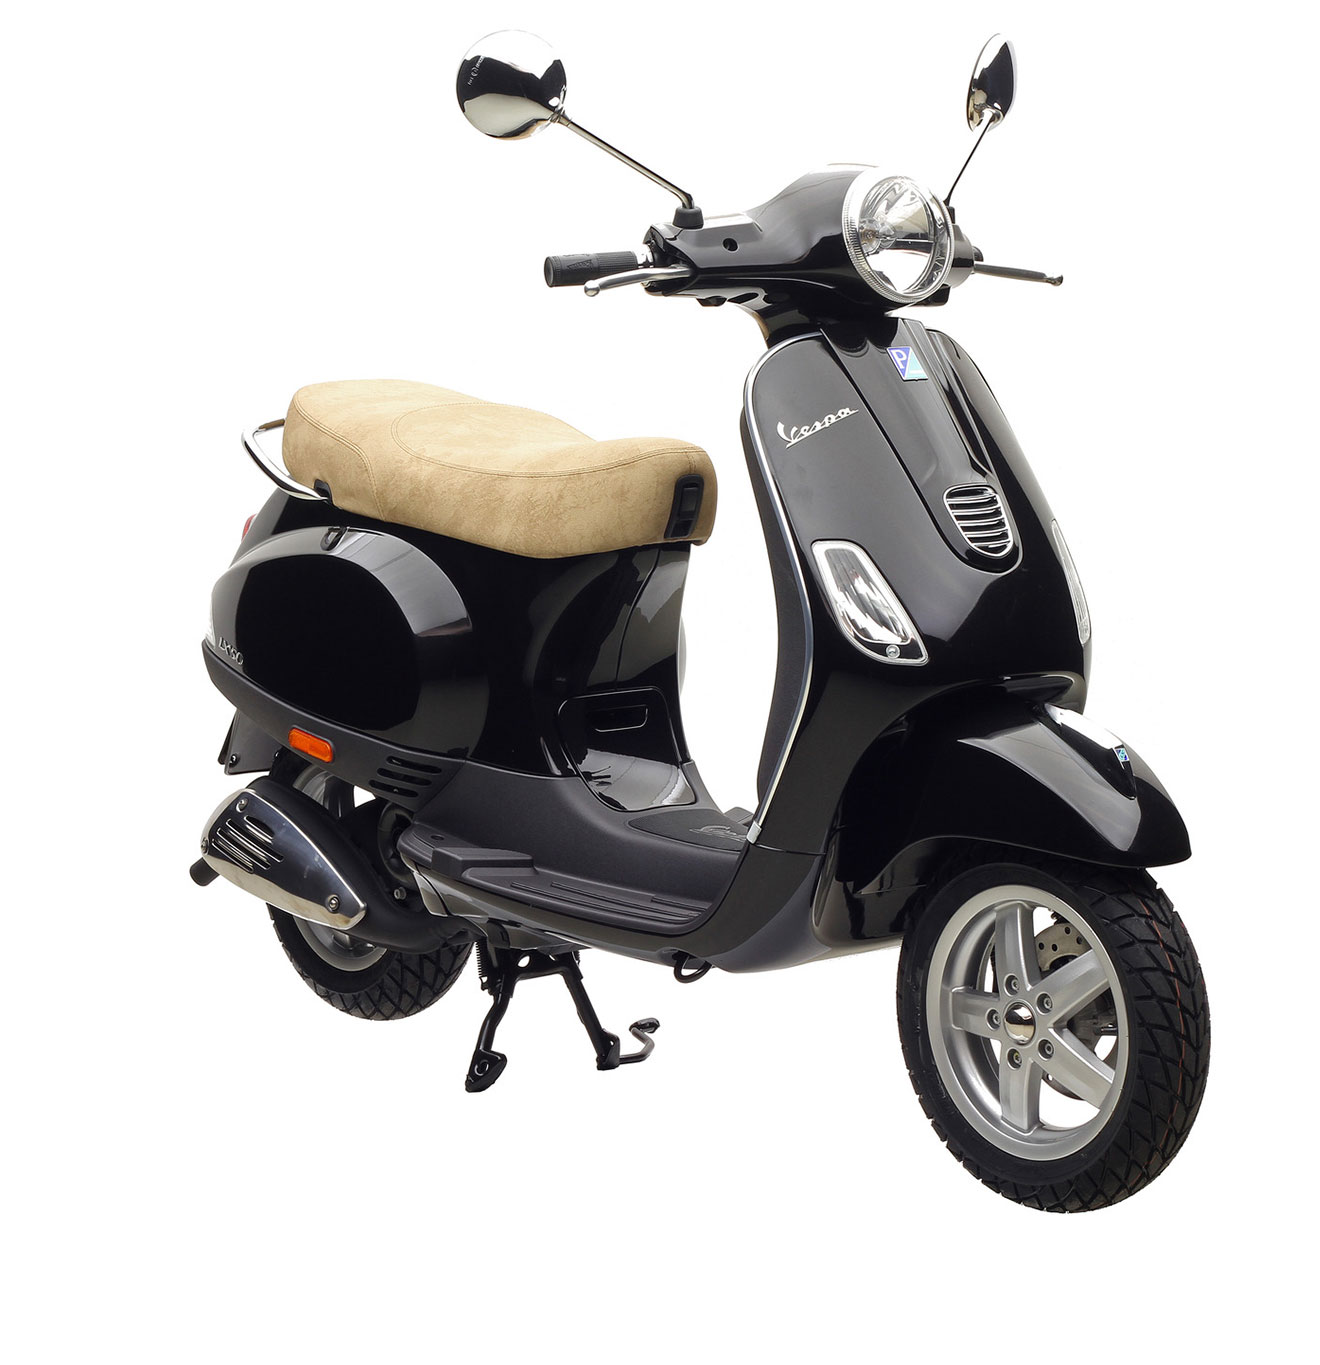 piaggio vespa lx 125 3v 93km h schwarz 124ccm. Black Bedroom Furniture Sets. Home Design Ideas